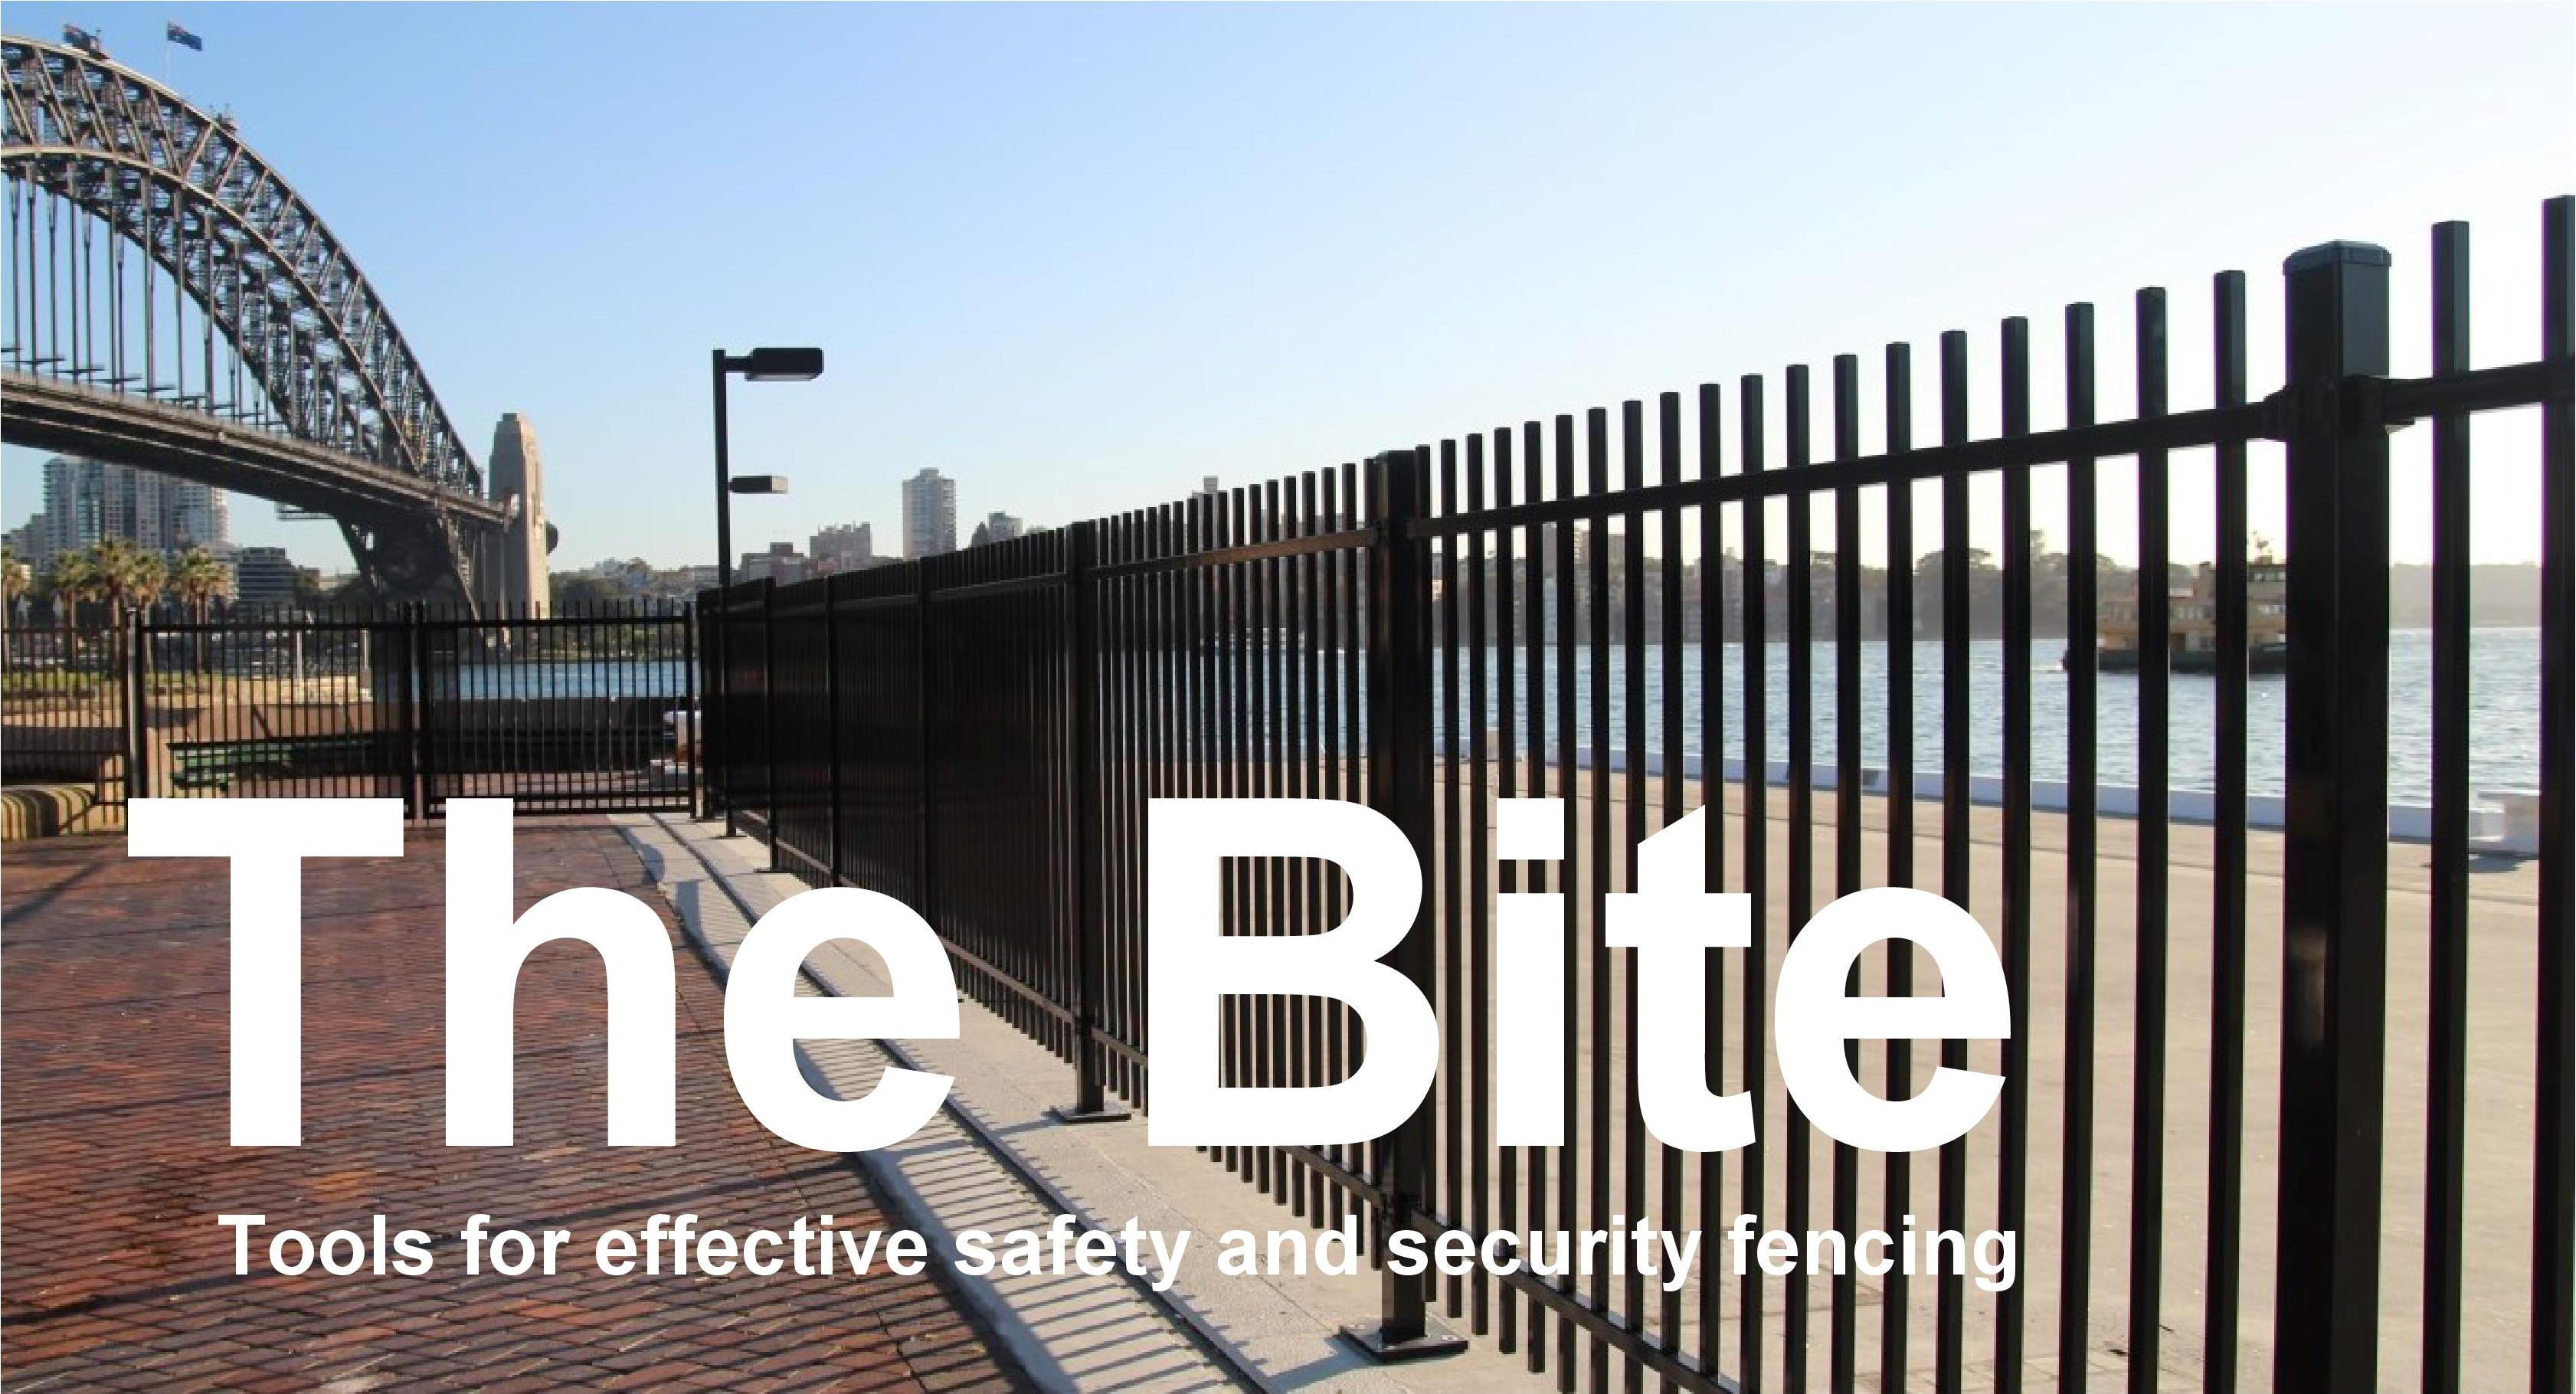 The Bite: Useful information about safety and security fencing from Bluedog Fences Australia.